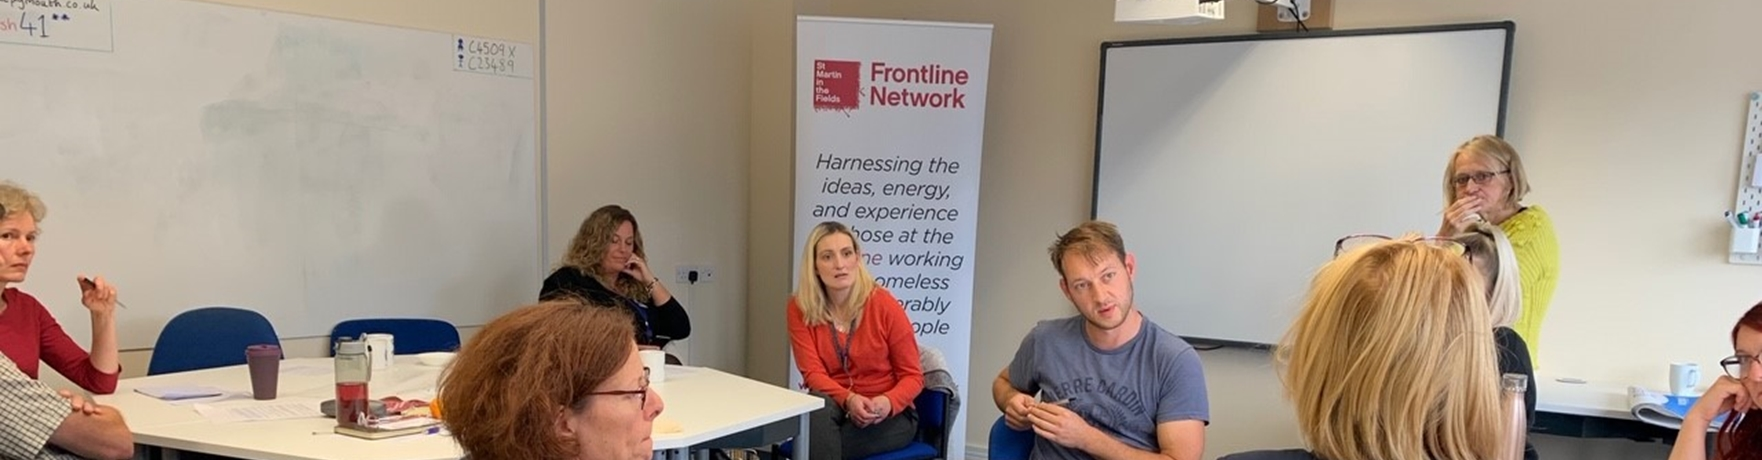 Plymouth Frontline Network Event - How To Access Housing & Related Services